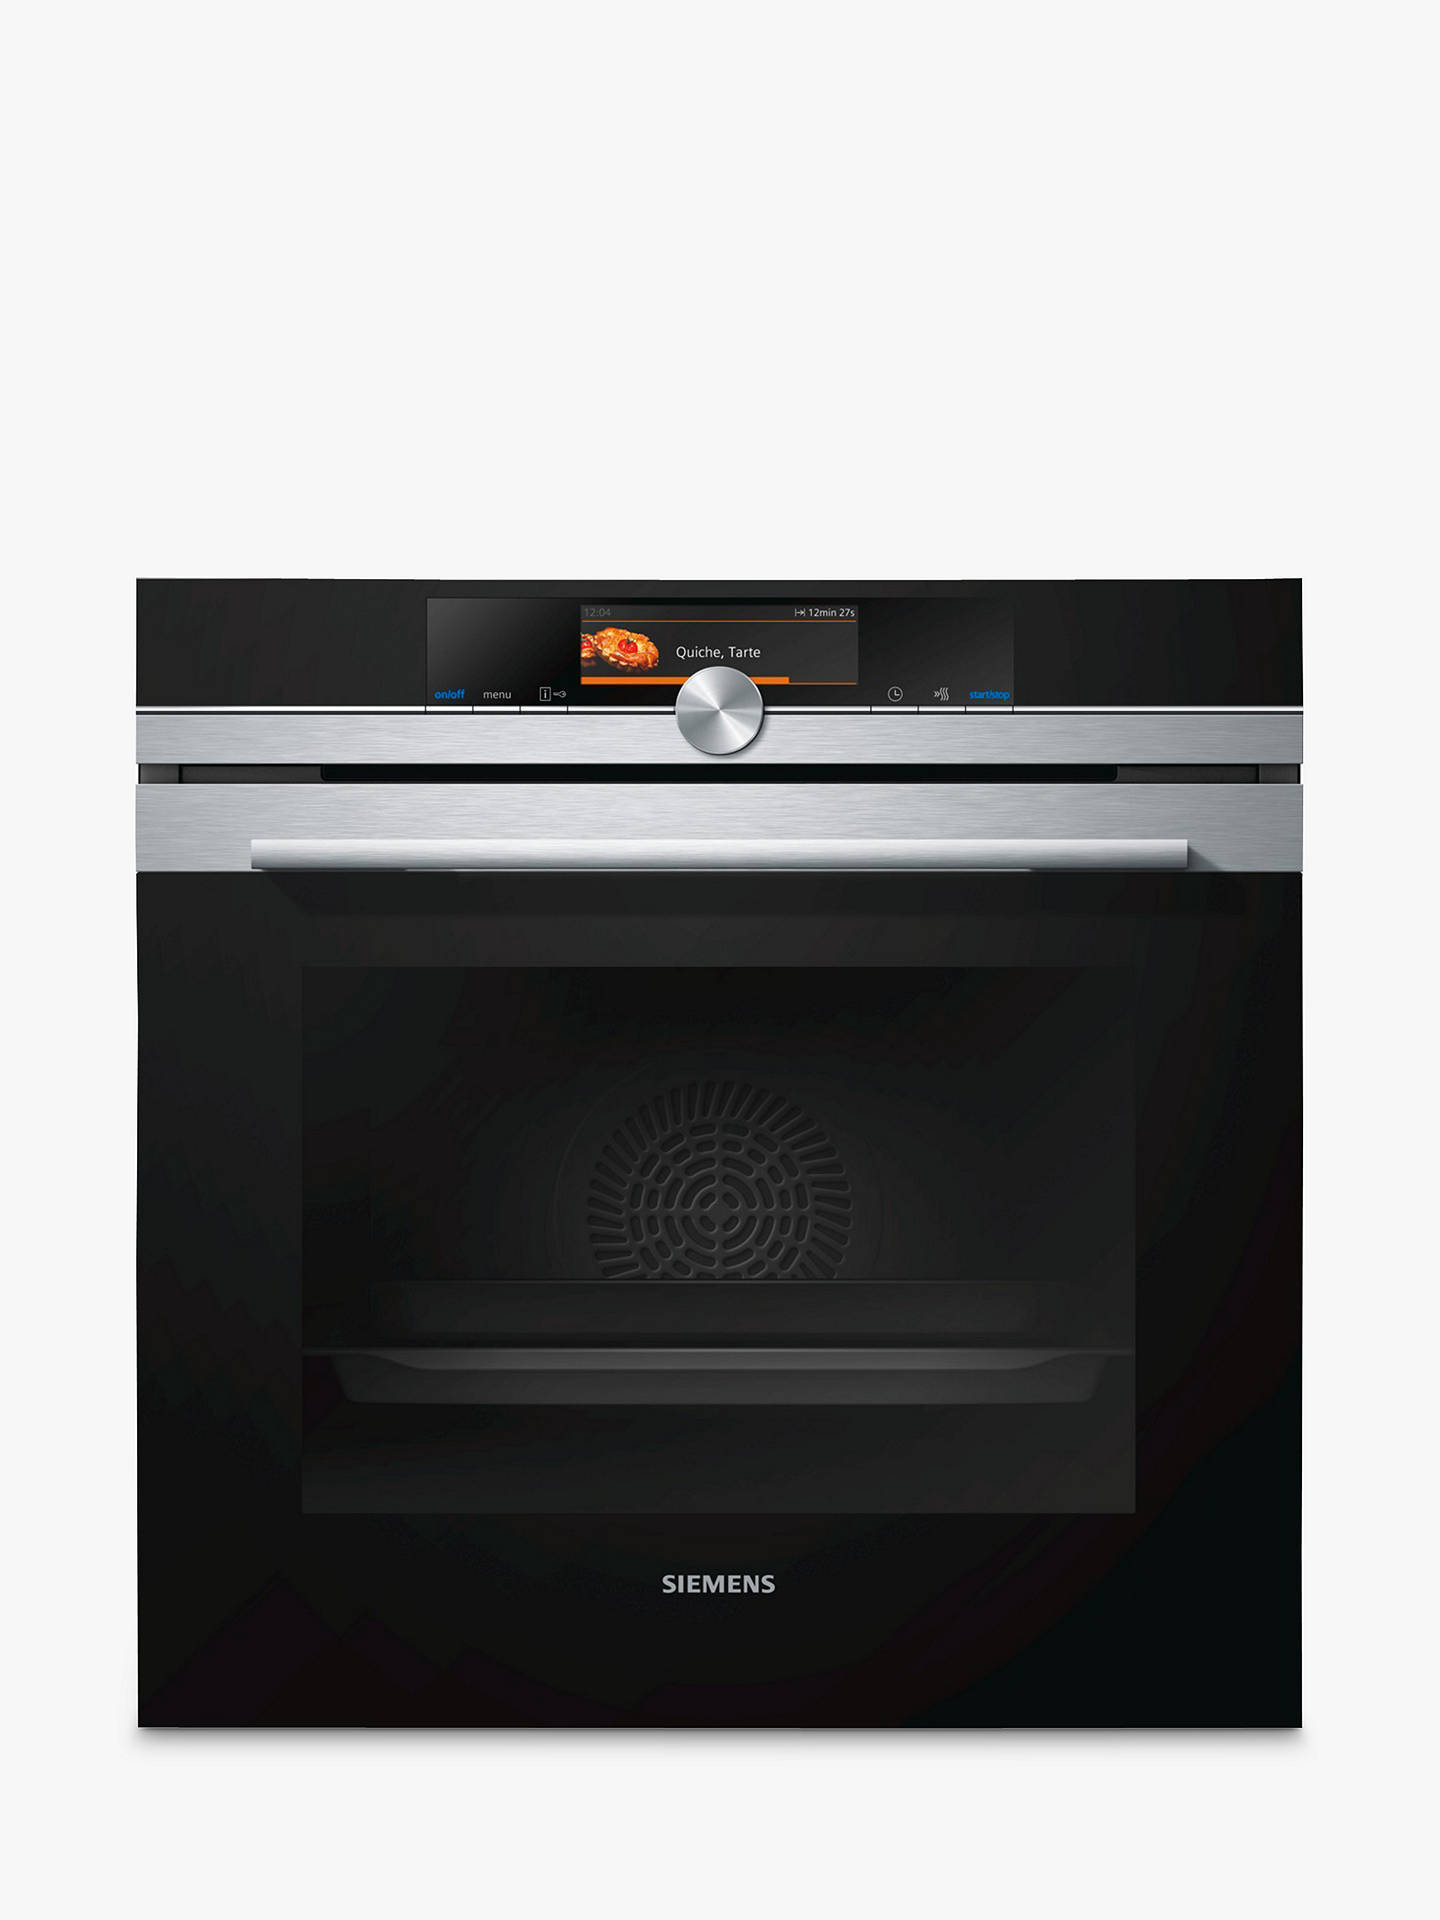 siemens hb678gbs6b single oven with home connect, stainless steel at